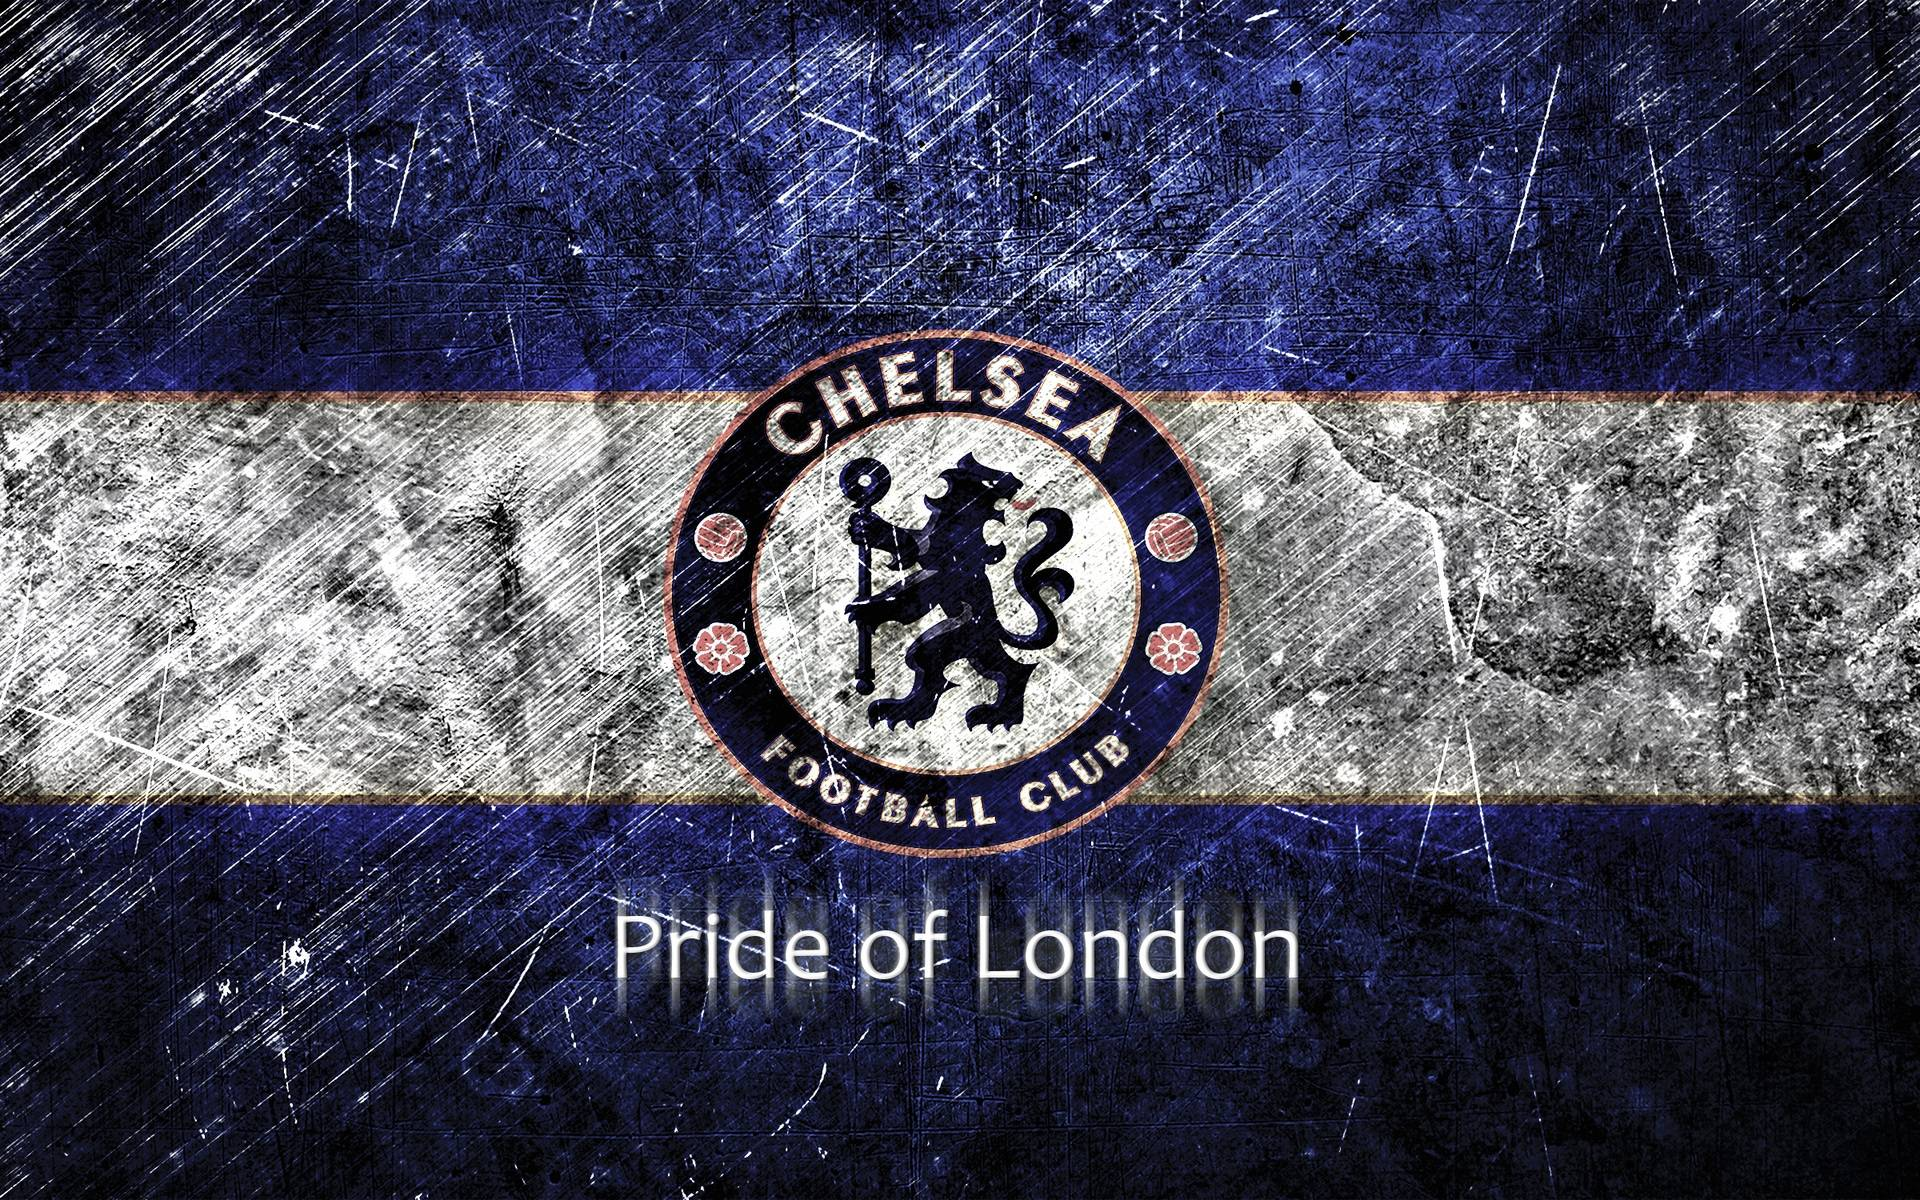 Chelsea FC Screensaver